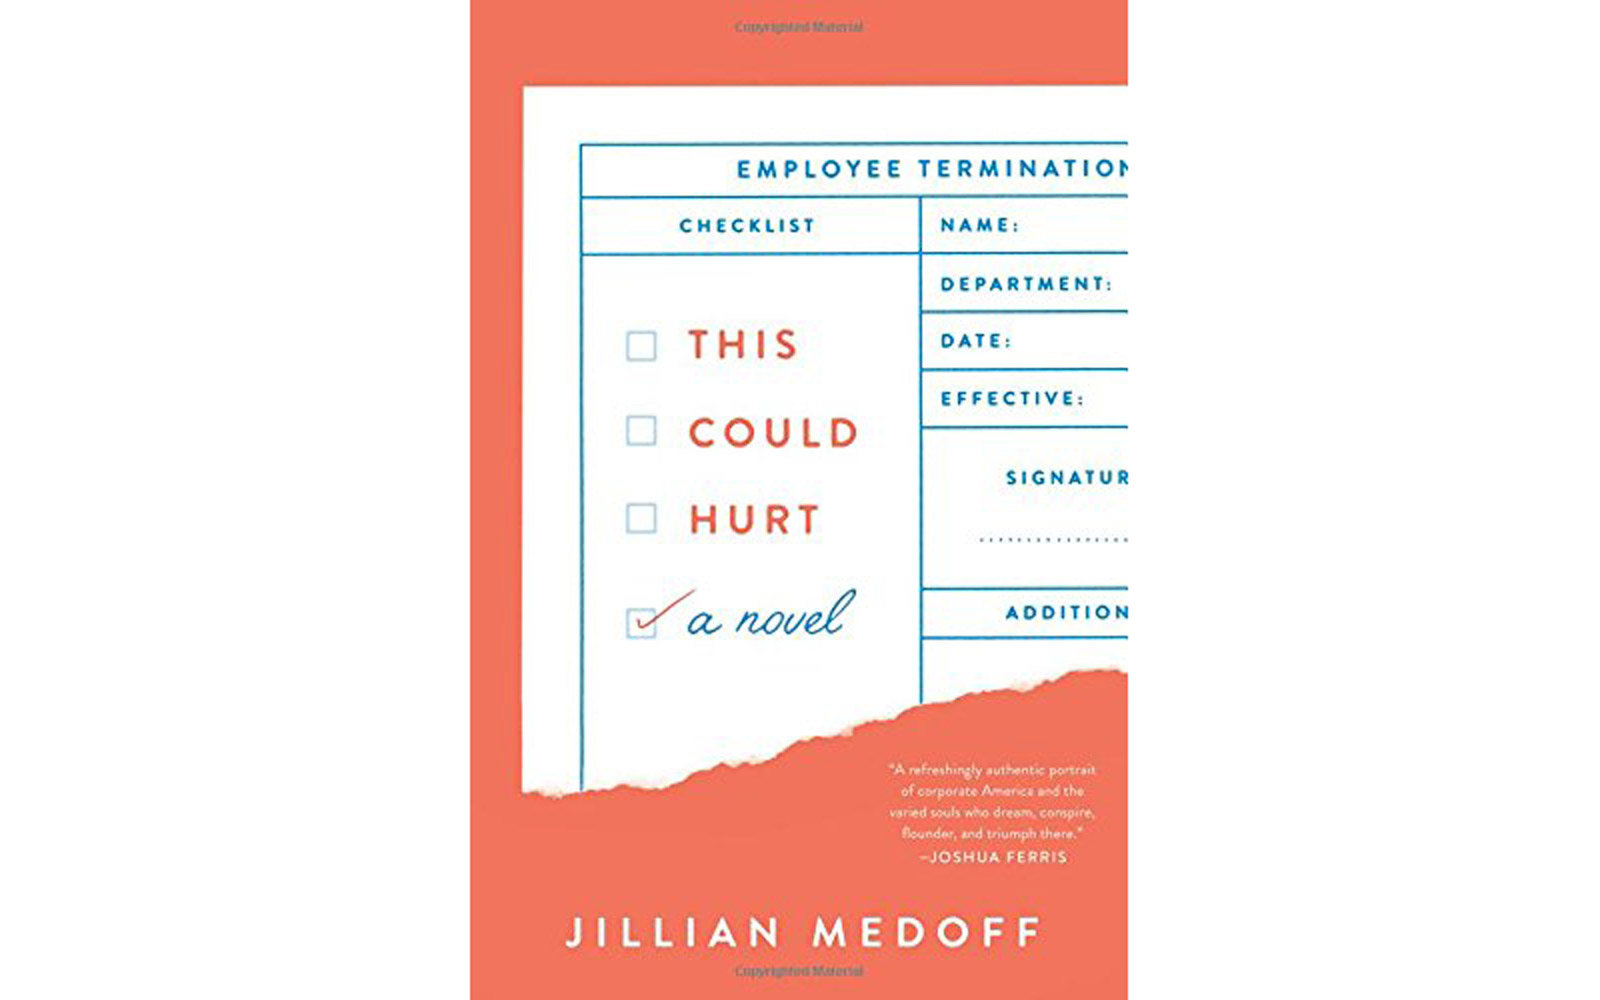 'This Could Hurt' by Jillian Medoff